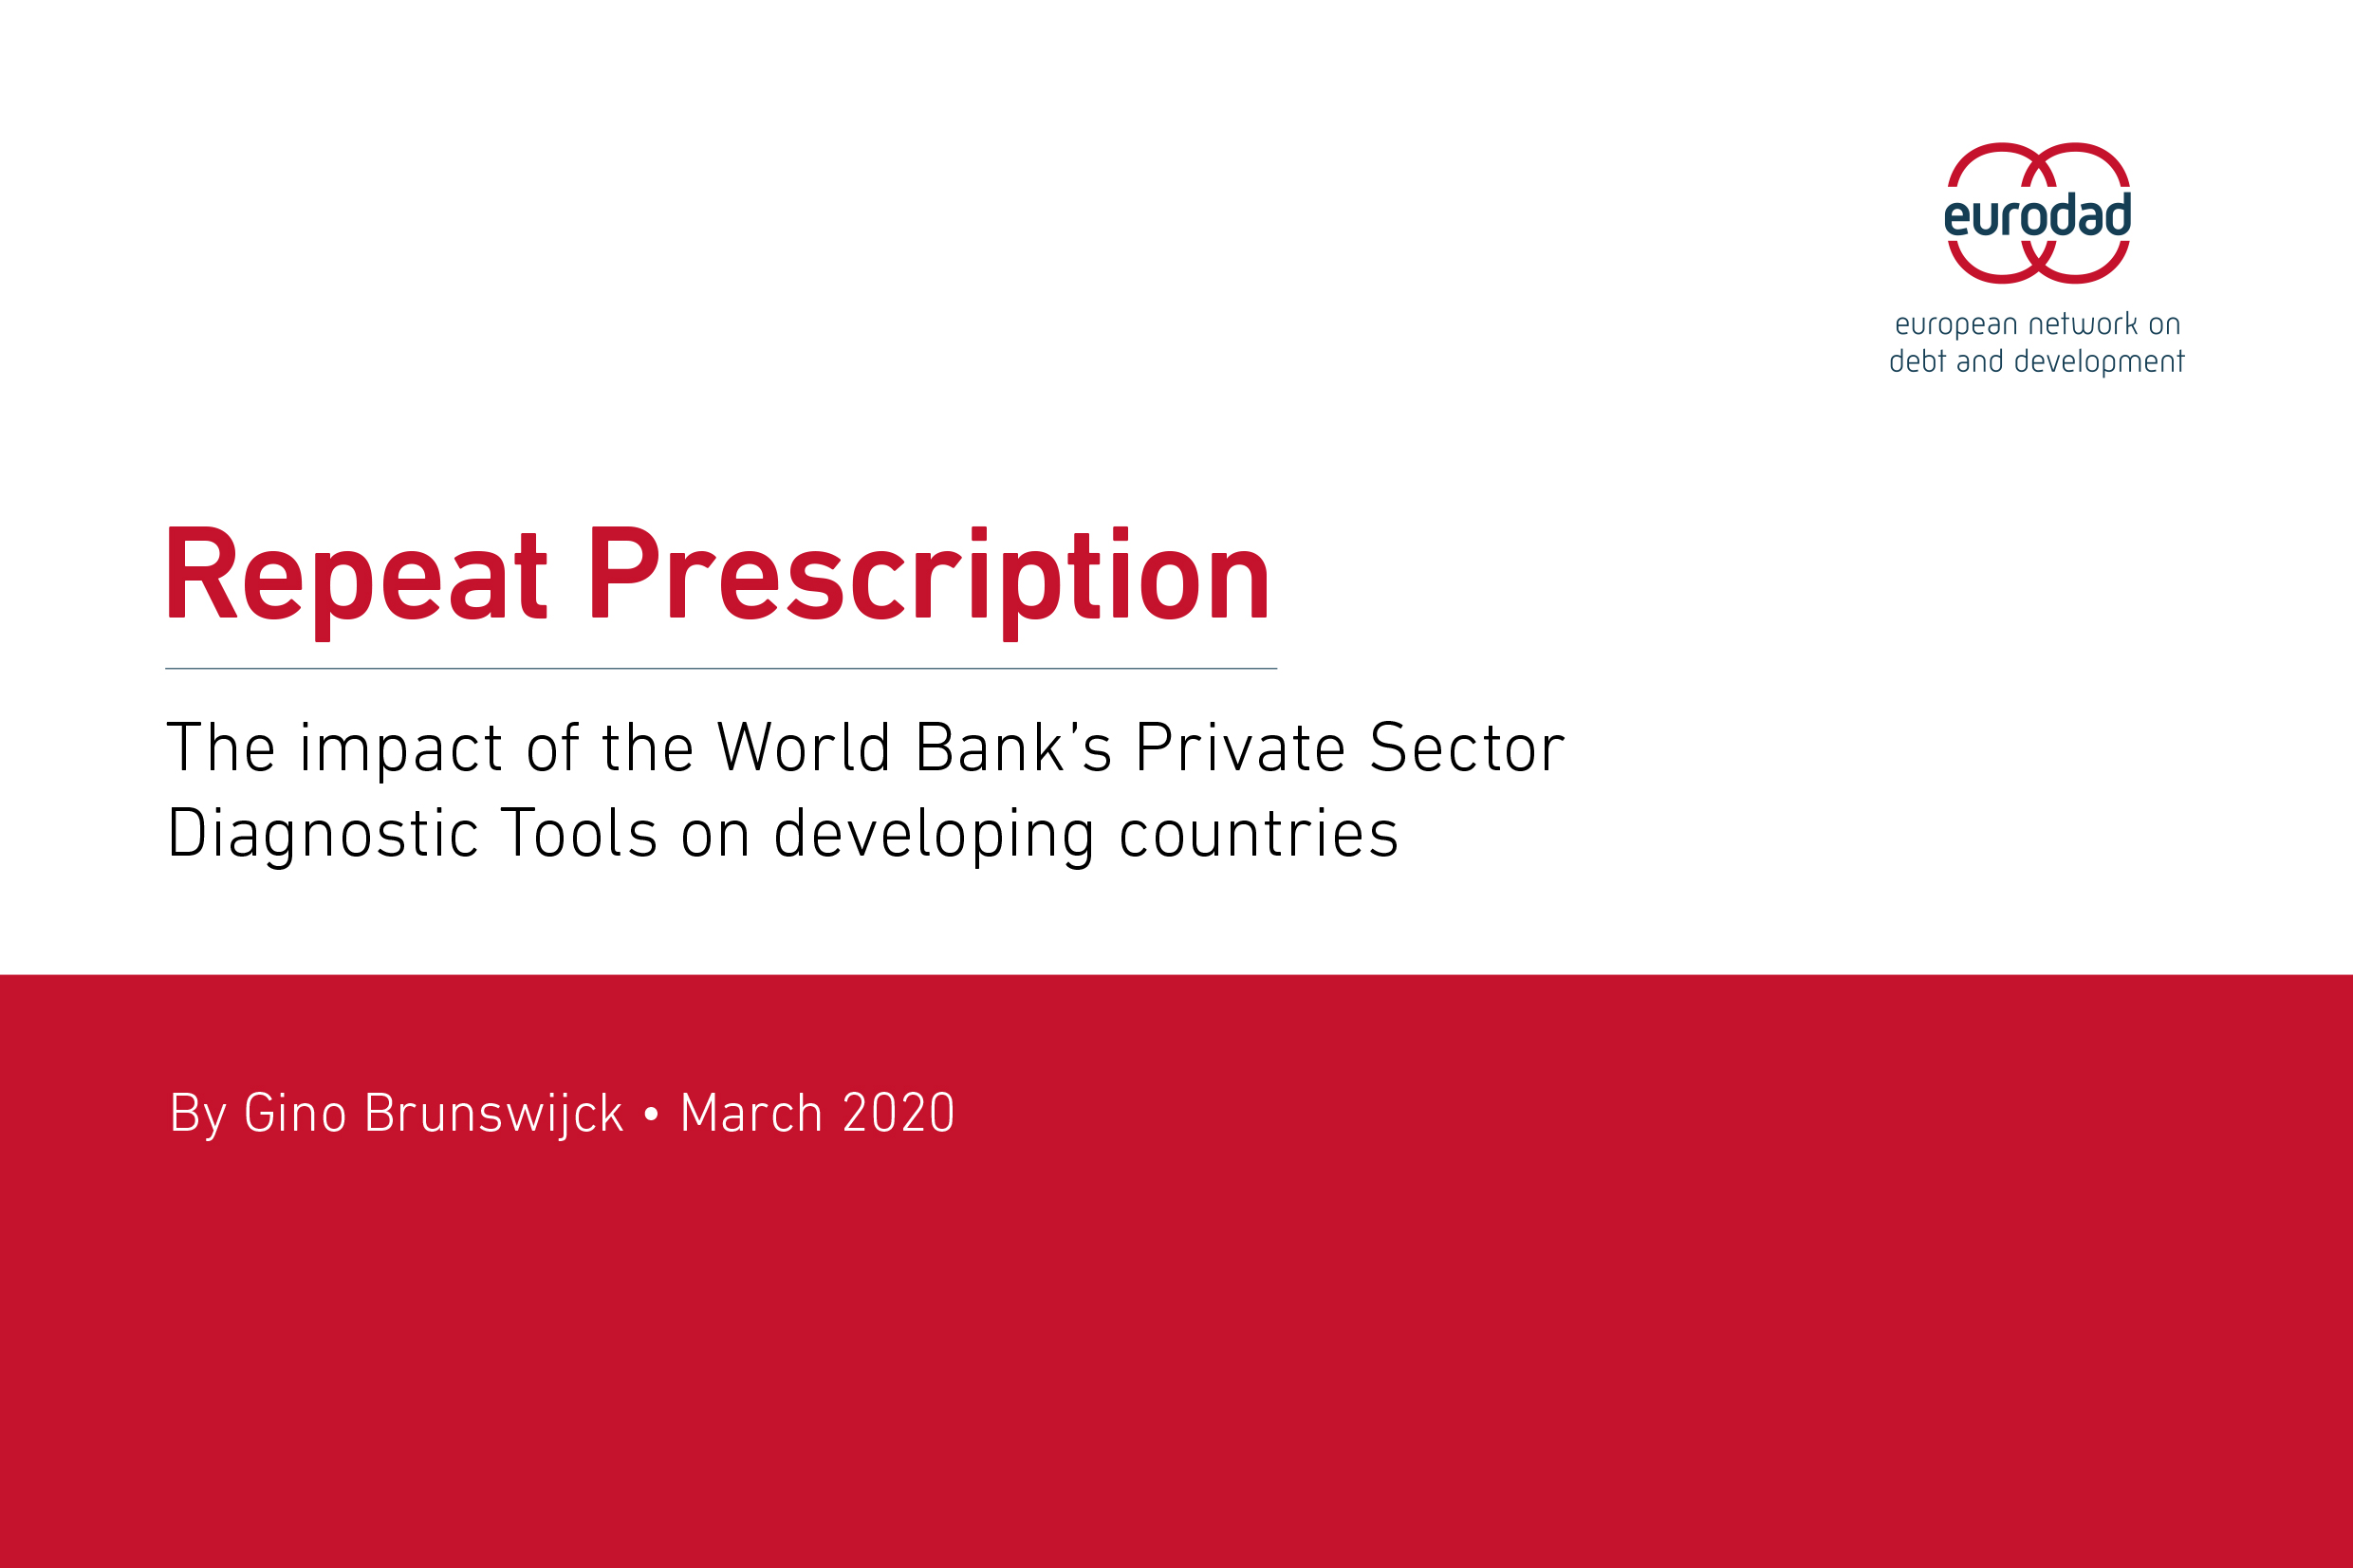 """Repeat Prescription report cover. Red text on white background reading """"Repeat Prescription. The impact of the World Bank's Private Sector Diagnostic Tools on developing countries."""